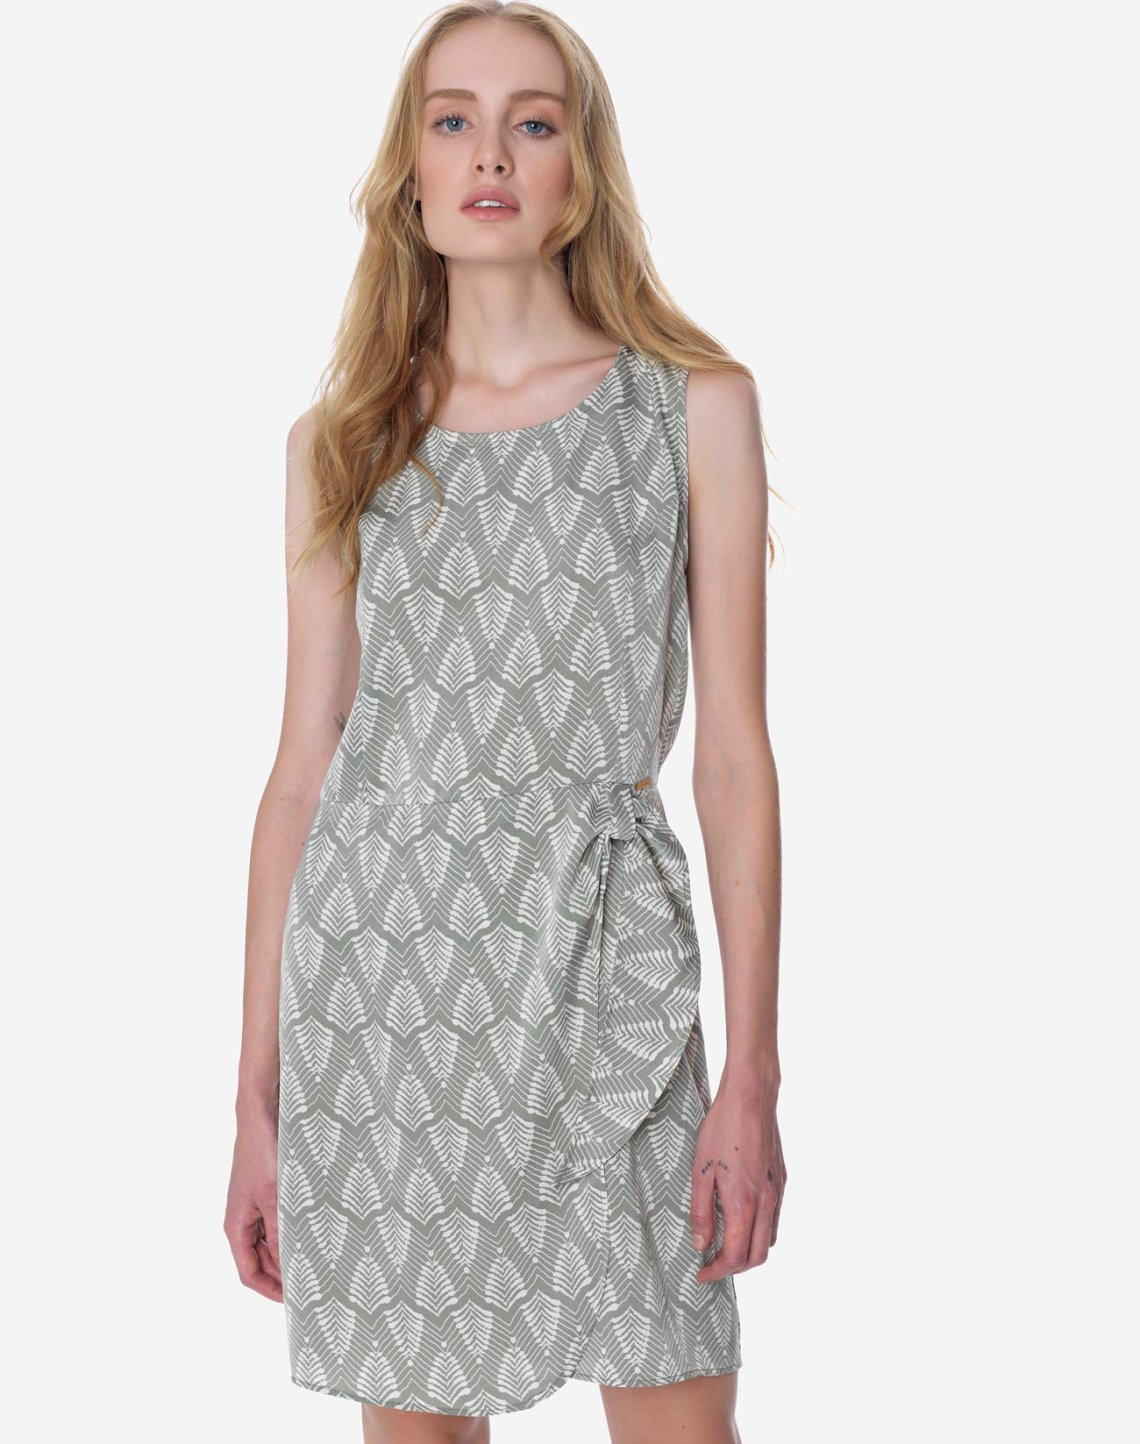 Printed dress with knot detail